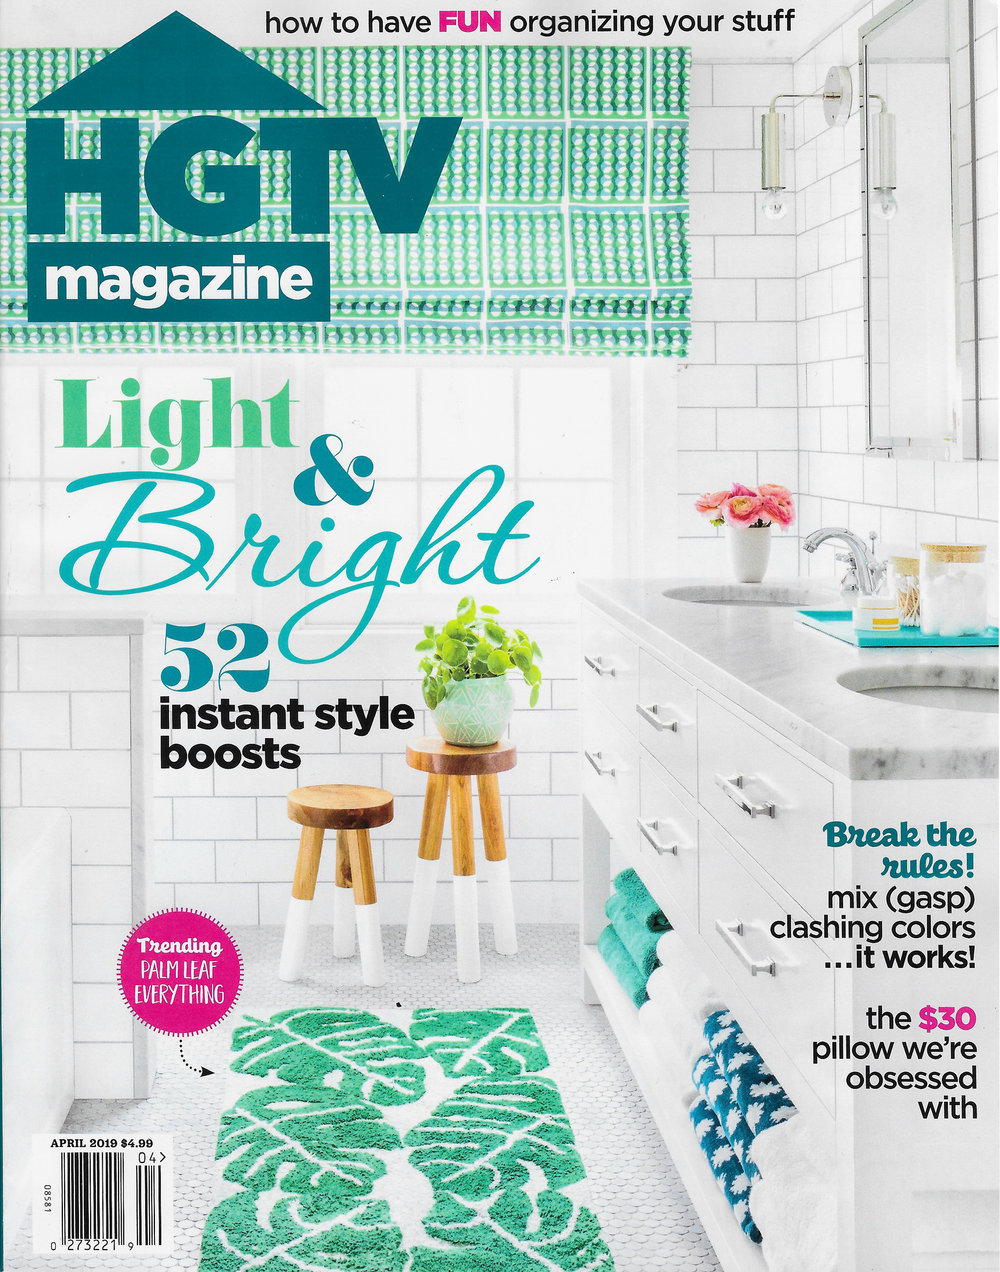 COVER - HGTV Magazine - April 2019